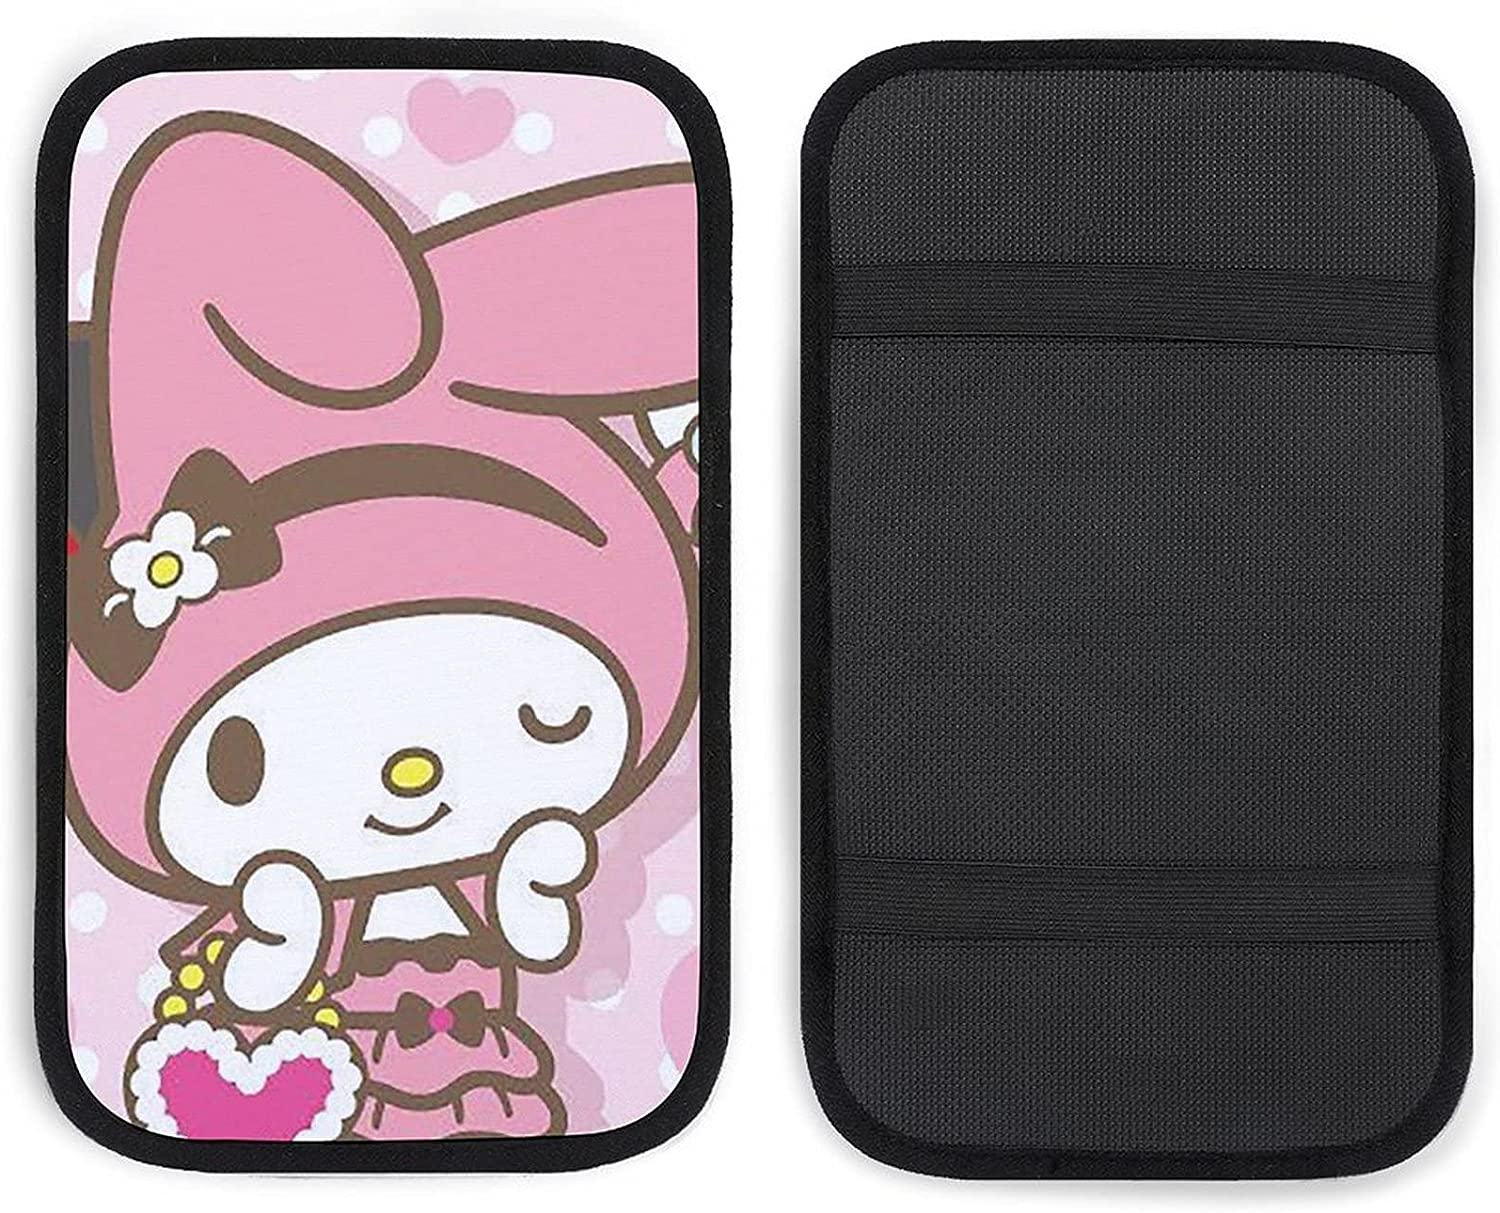 GUIJI Car Deluxe Armrest My Melody Brand new Cartoon Cover Co Auto Center Console